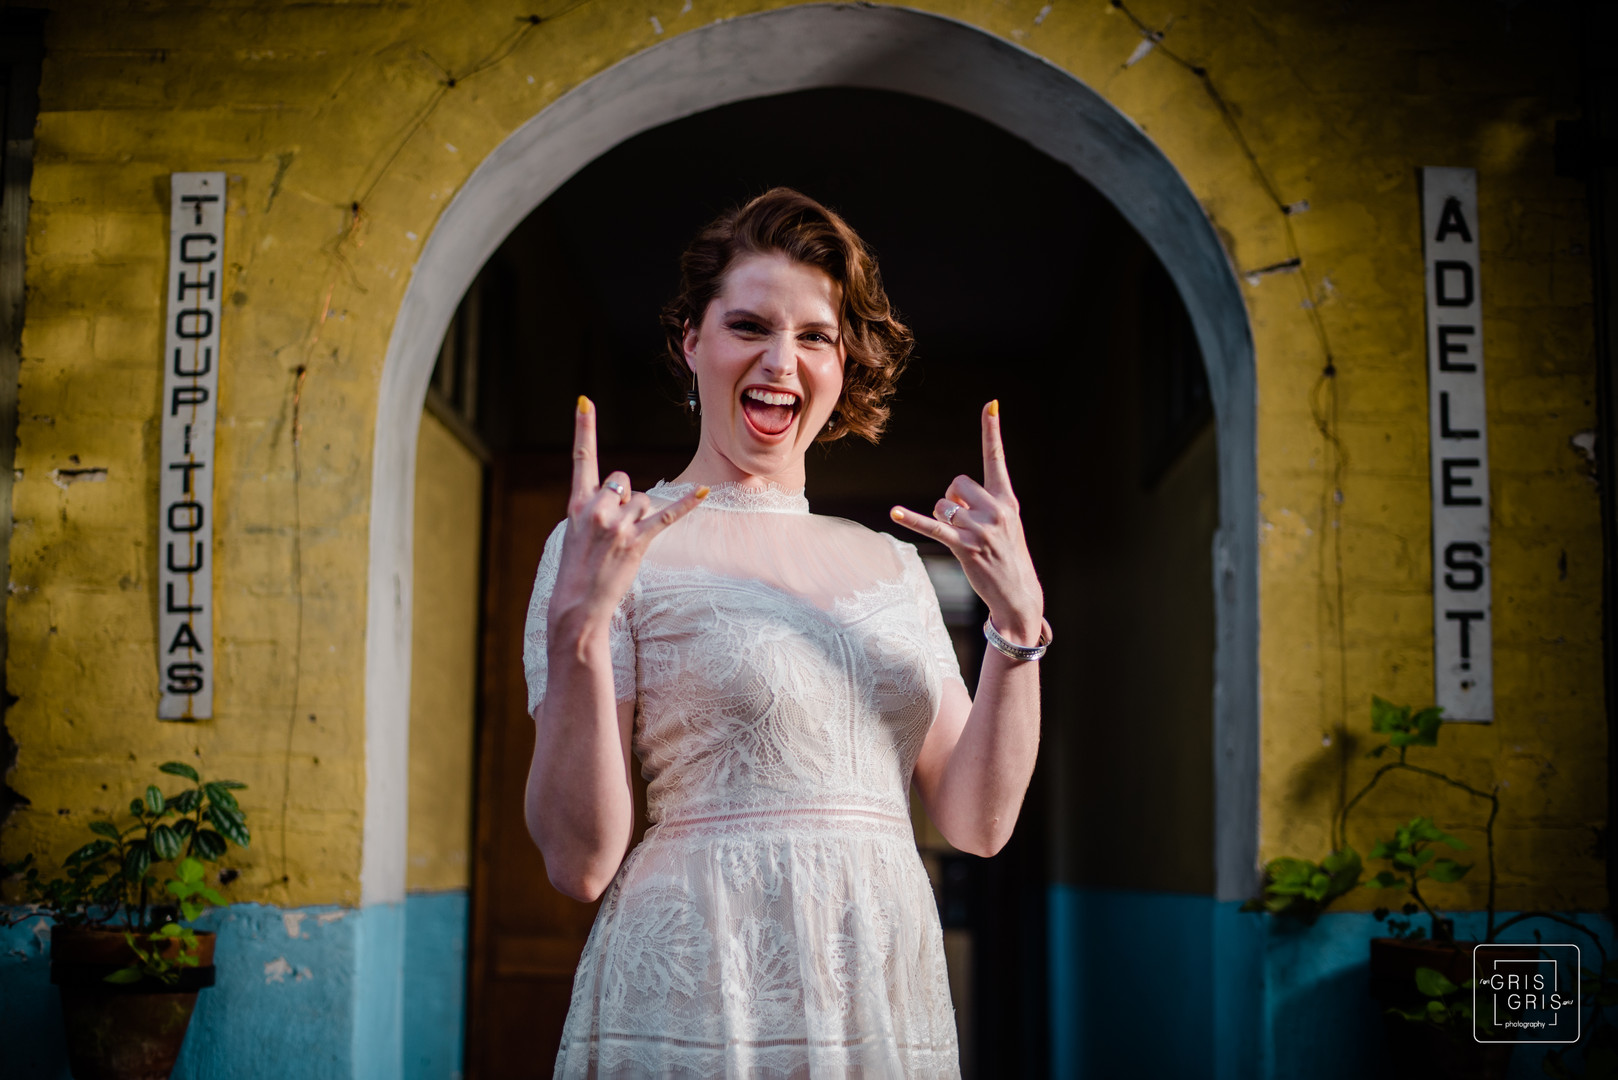 metal bride poses with hand horns durring bridal portrait shoot with new orleans themed backdrop